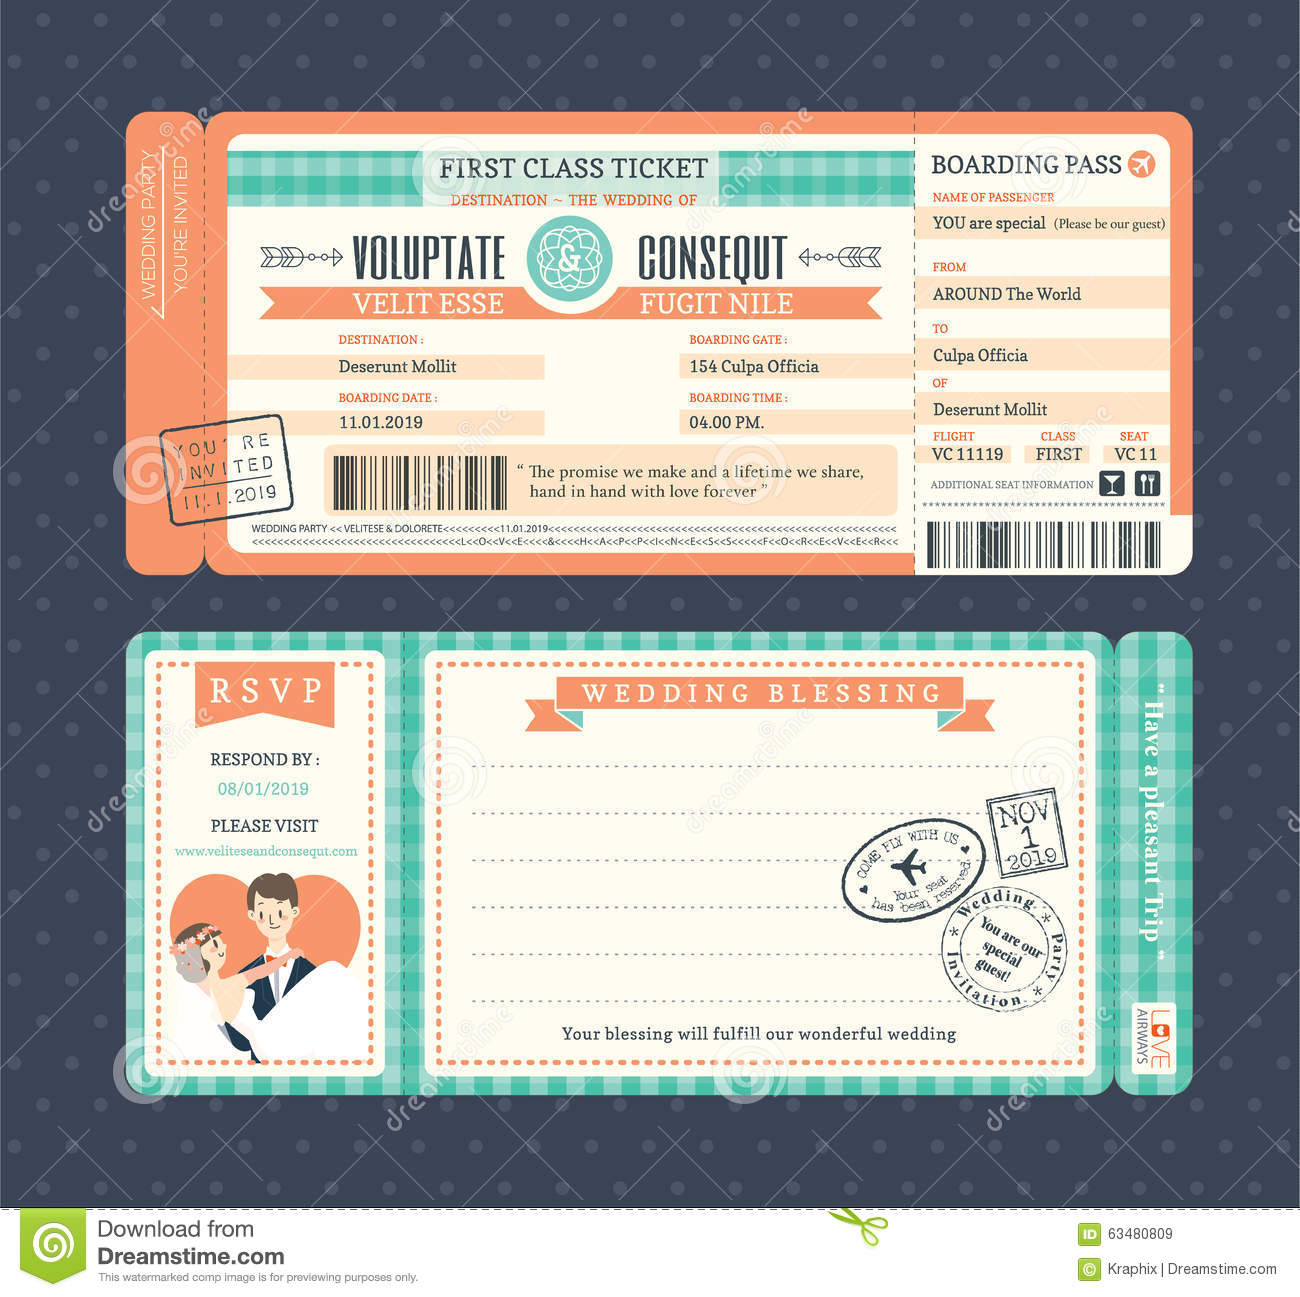 Pastel Retro Boarding Pass Wedding Invitation Template Stock Vector